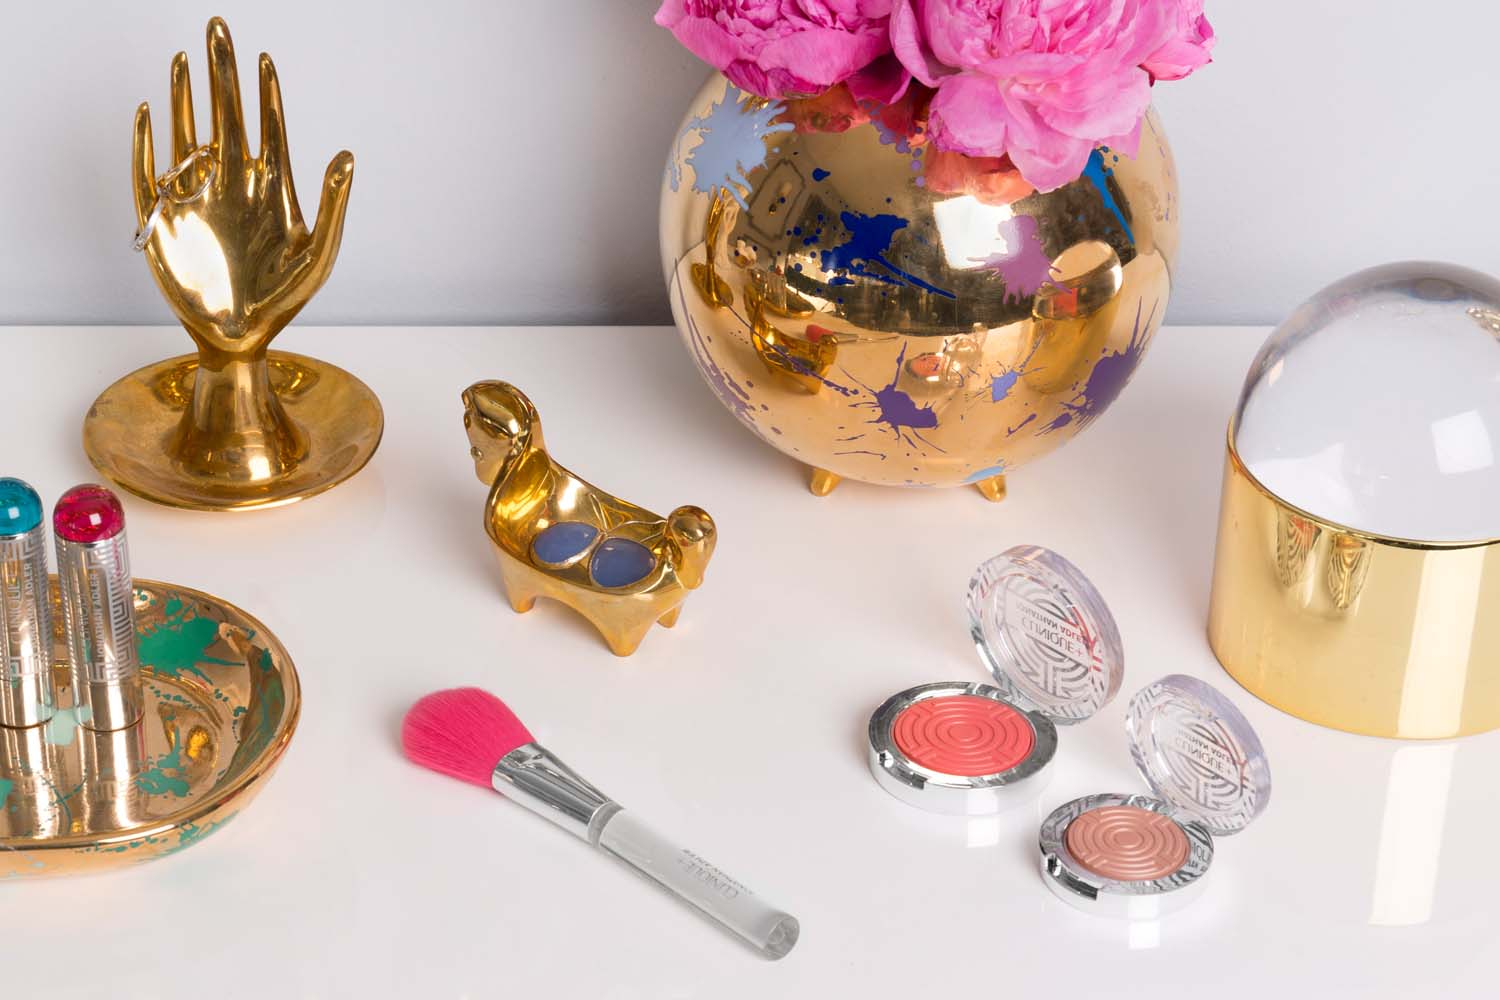 I'll take everything on this dressing table, please